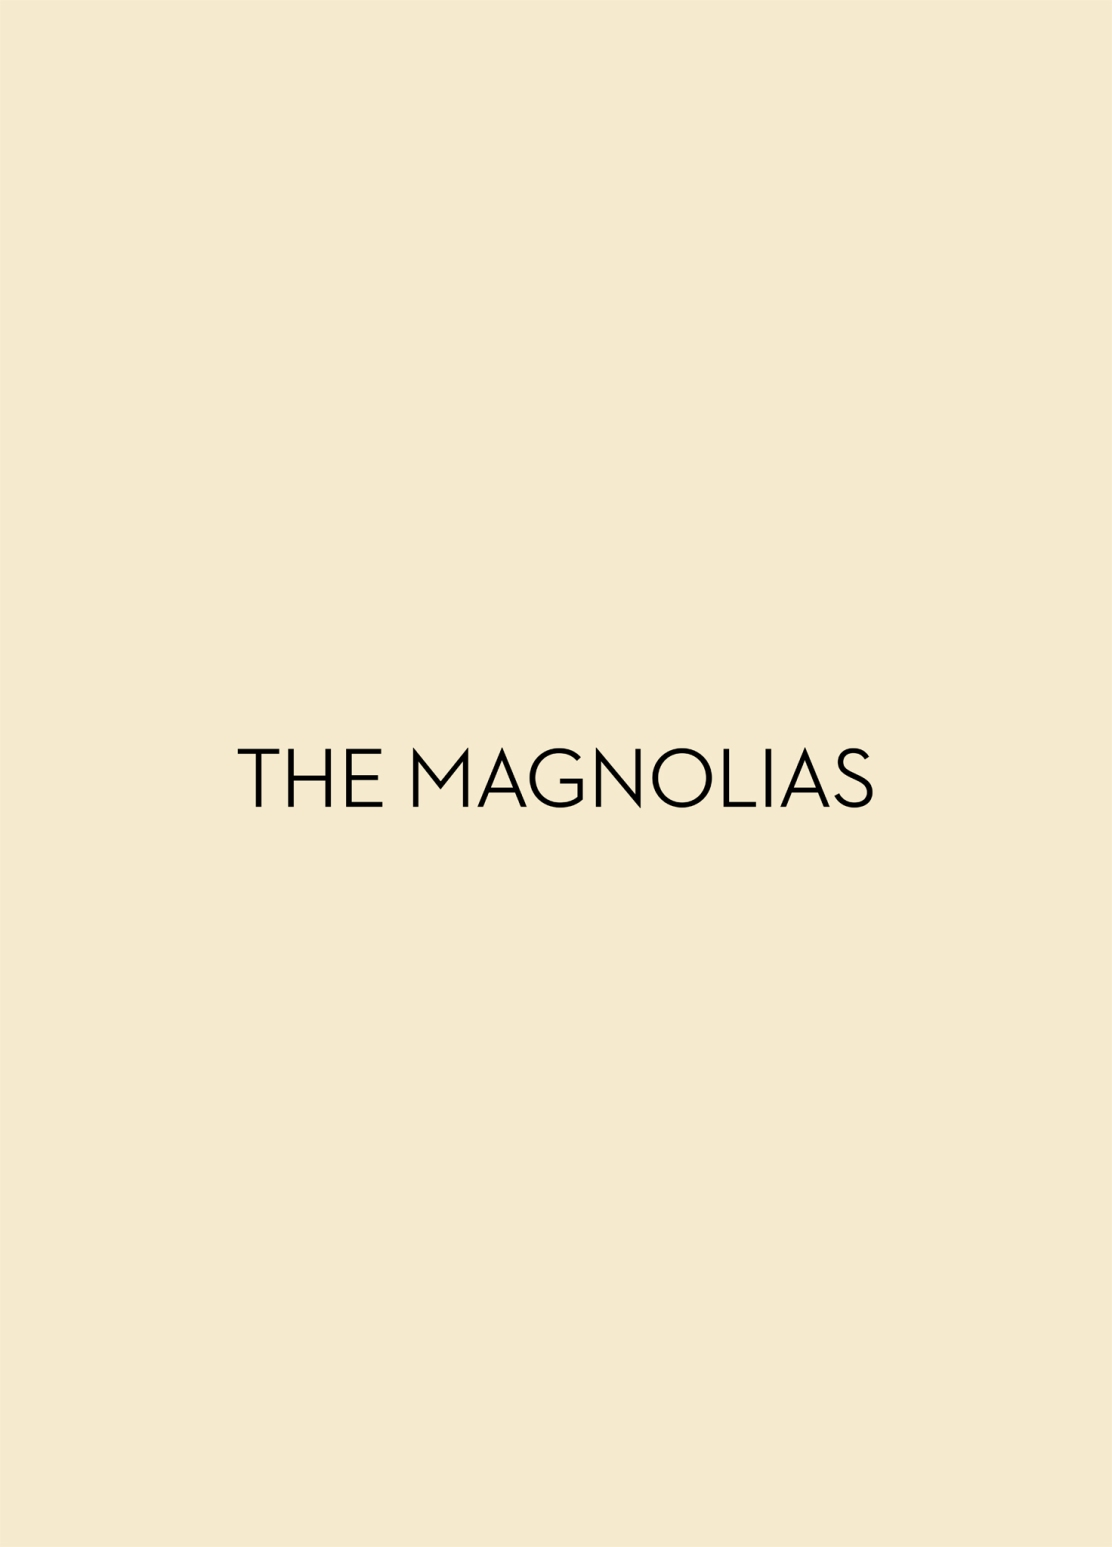 DLF Magnolias Book Draft 2-1